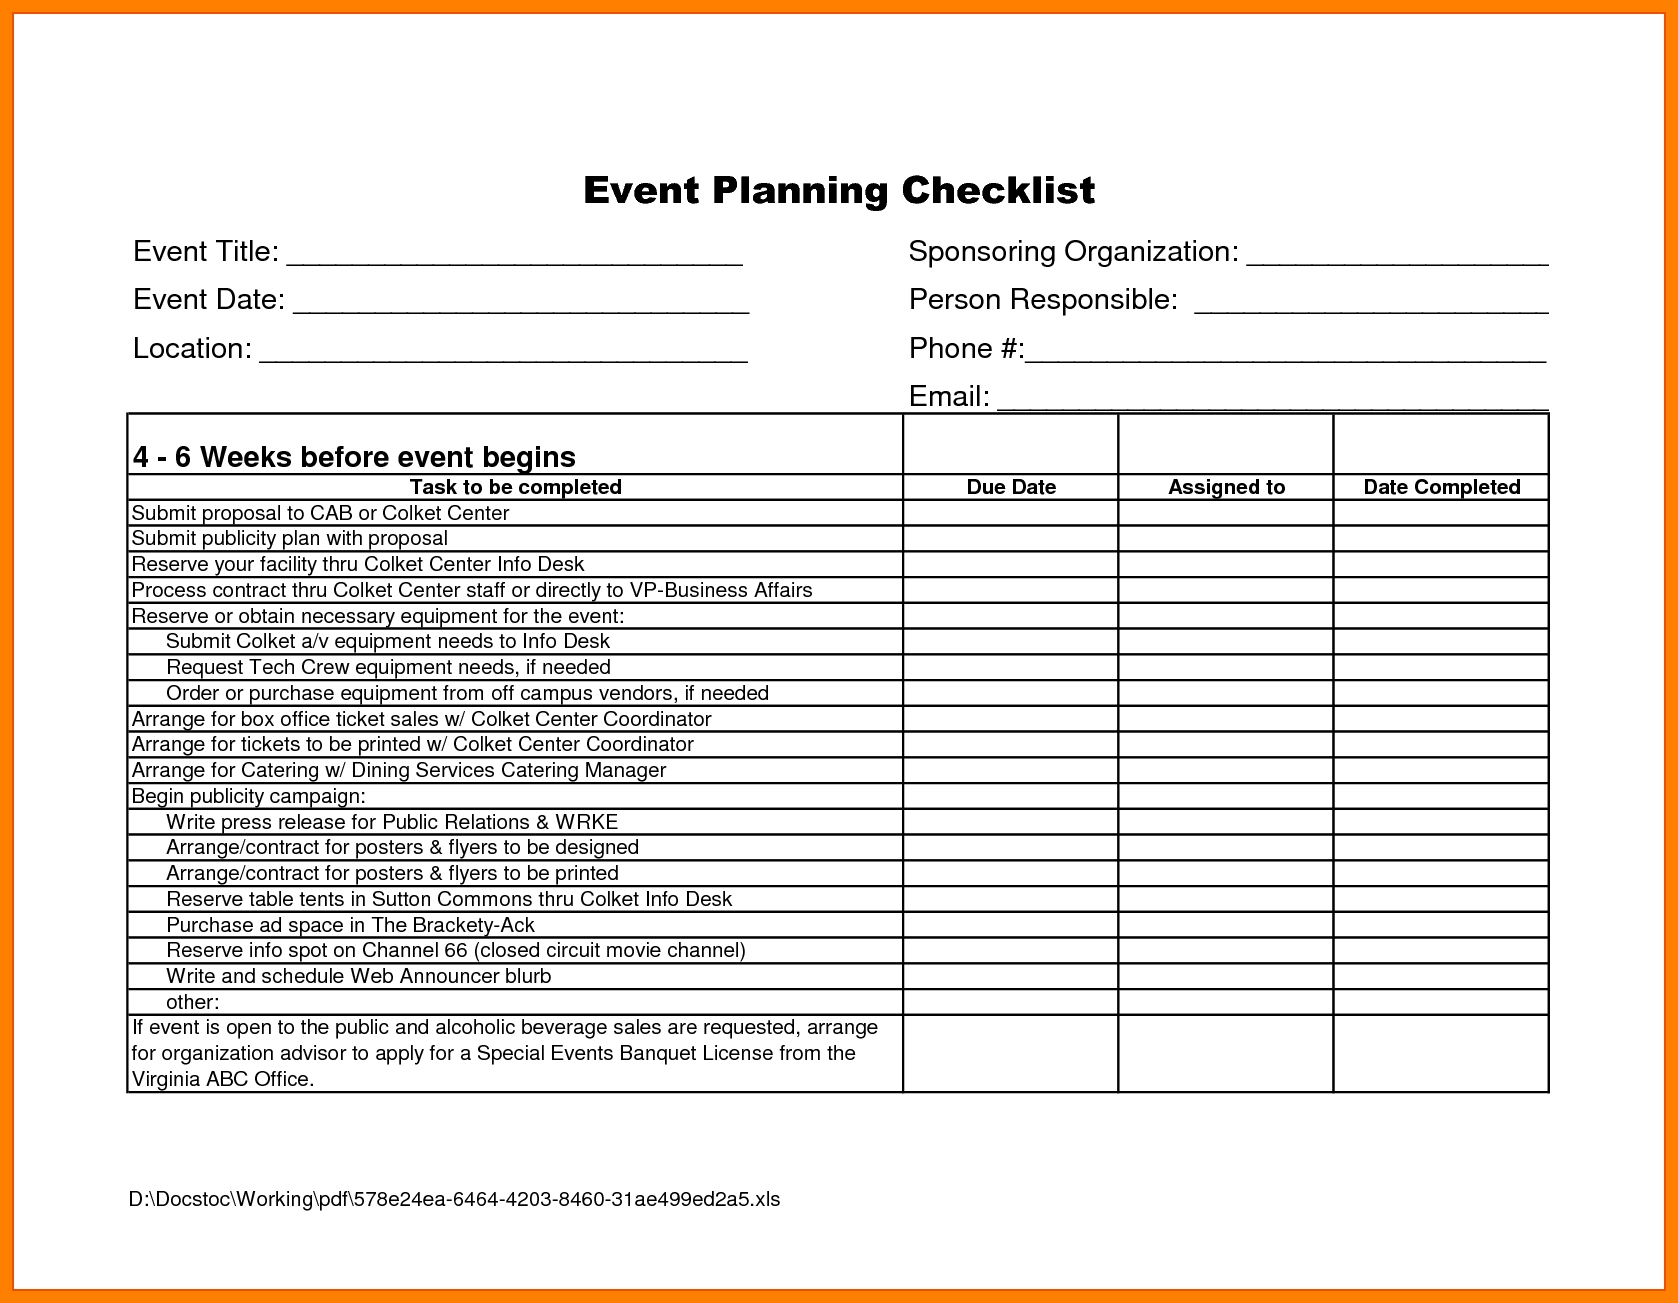 Event Checklist Template Excel Free - Yeniscale.co  Event Planning Template Excel Free